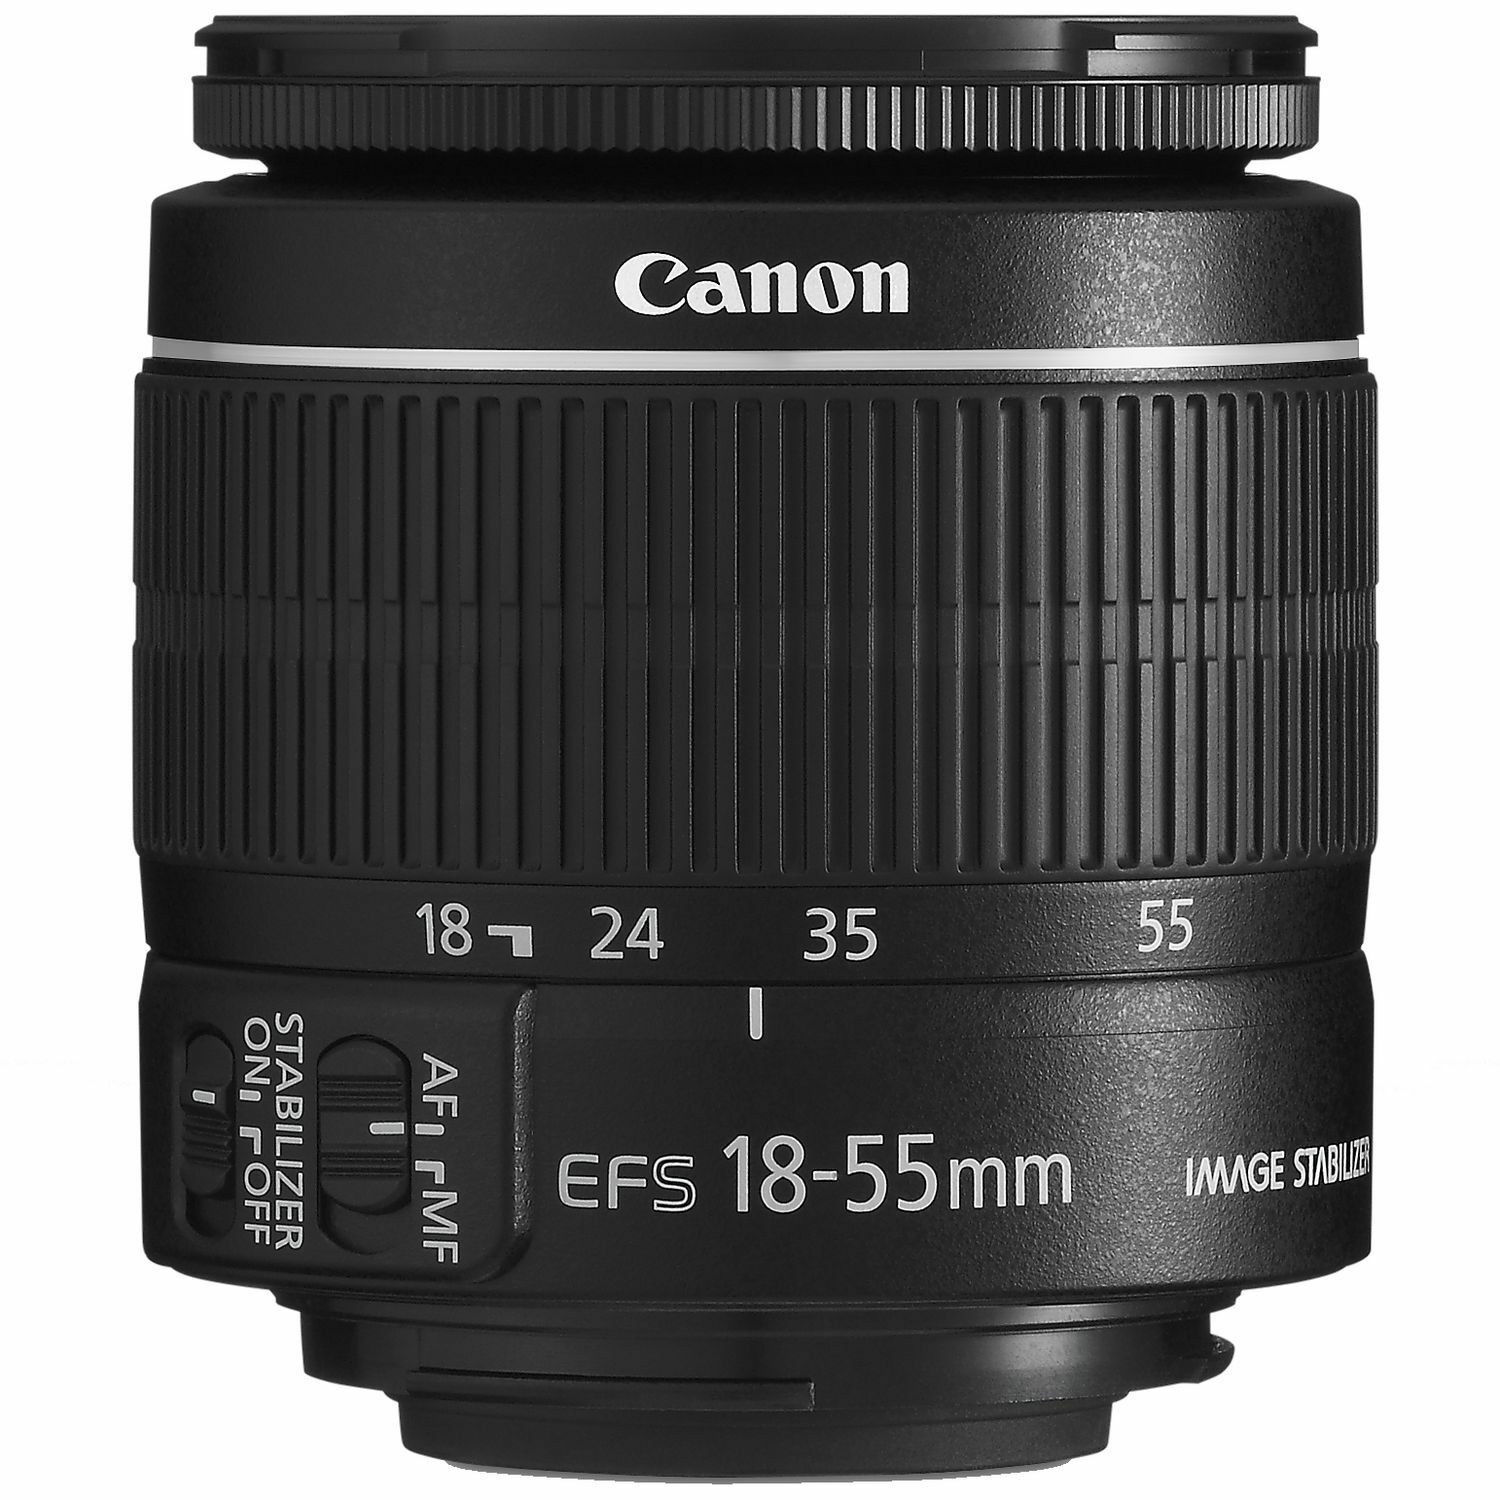 Canon EF S 18 55mm f/3.5 5.6 IS II SLR Zoom Lens BRAND NEW IN WHITE BOX